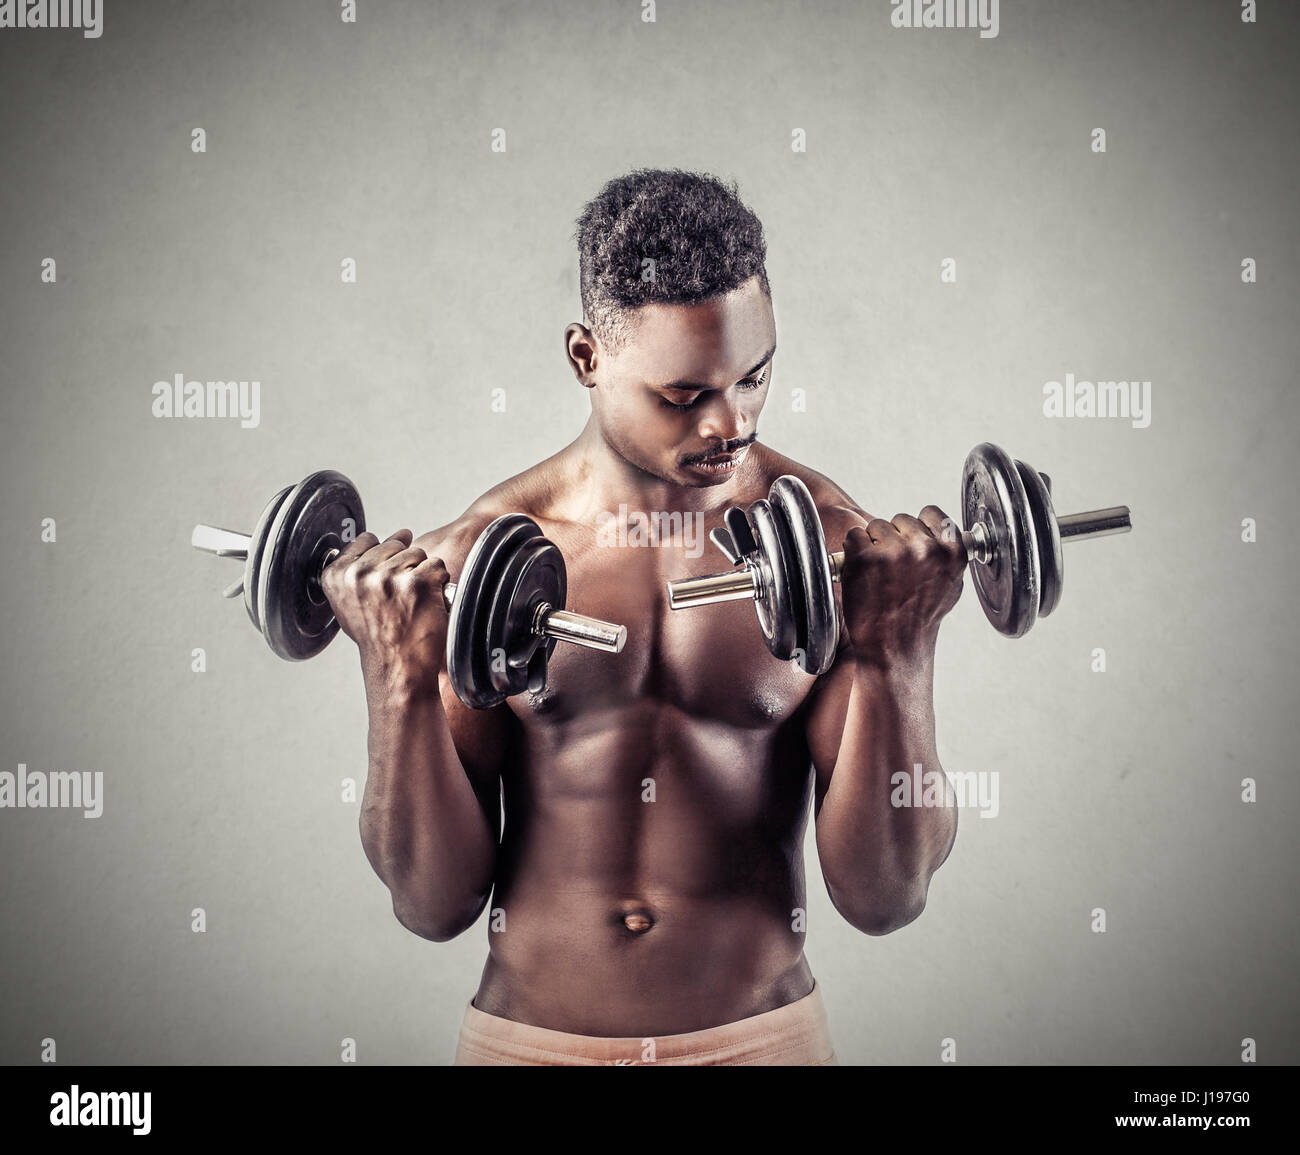 Black man working out with dumbbells - Stock Image